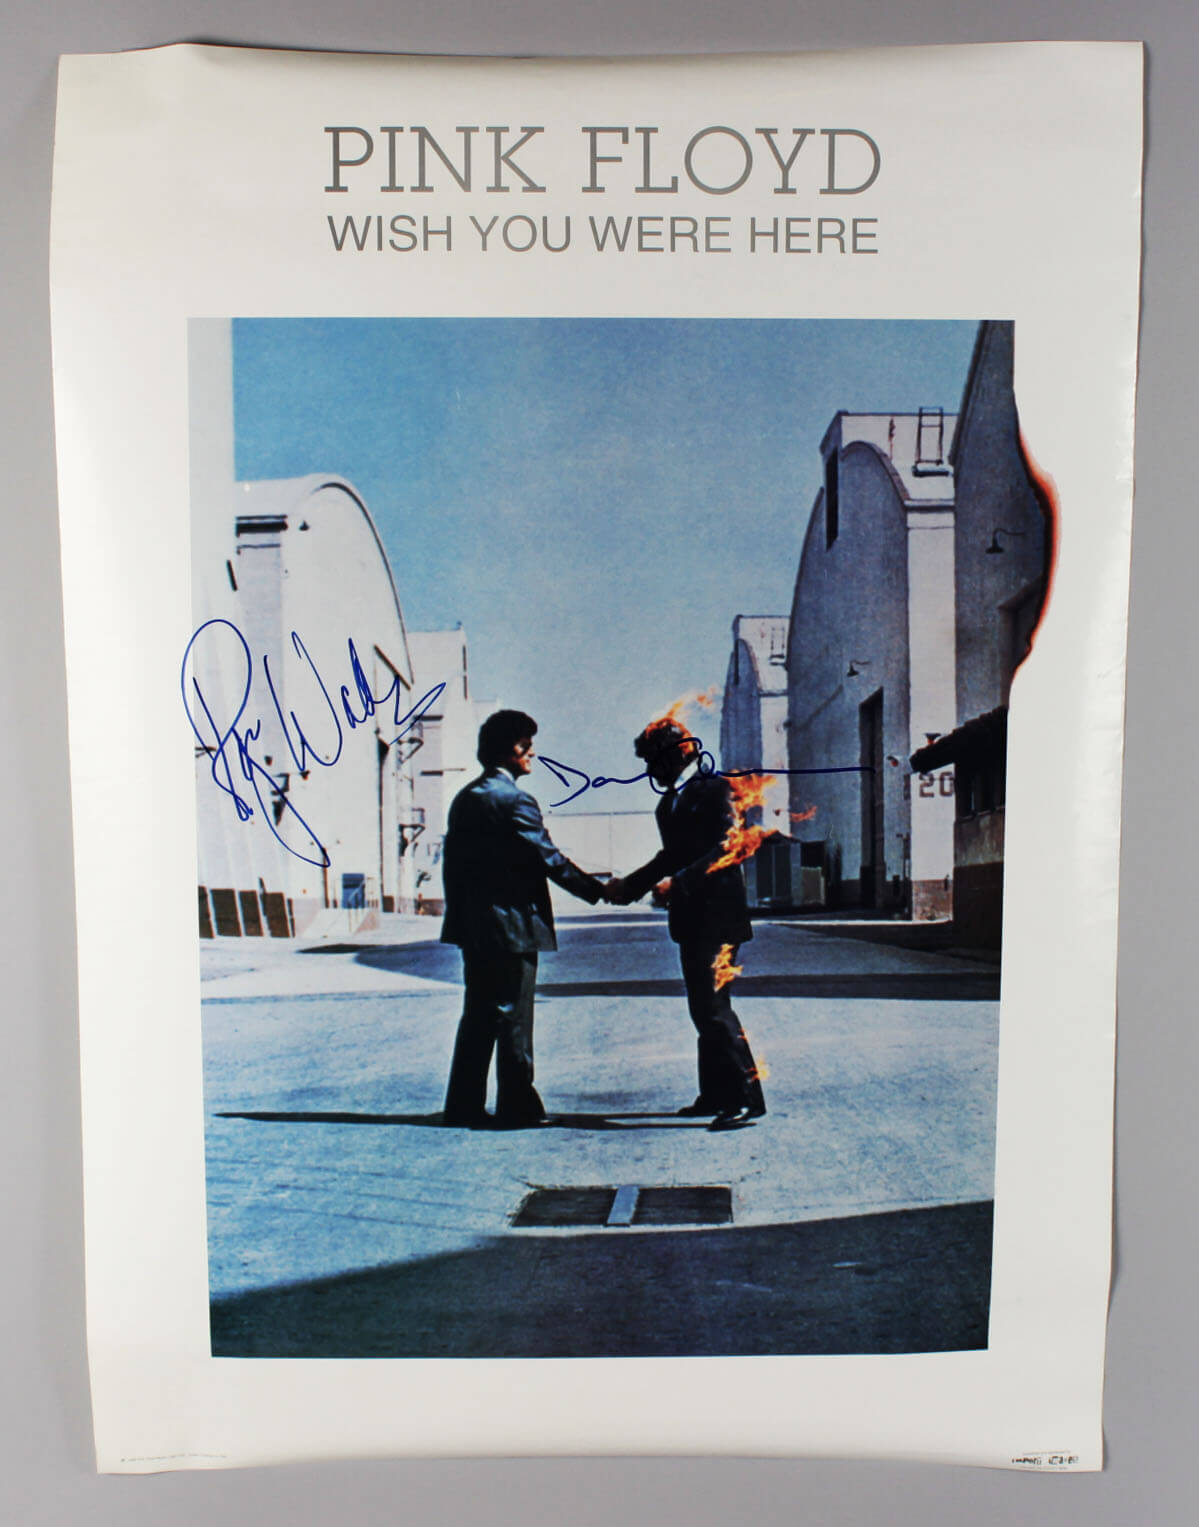 Wish you were here pictures You furnish the pictures and Ill furnish the war